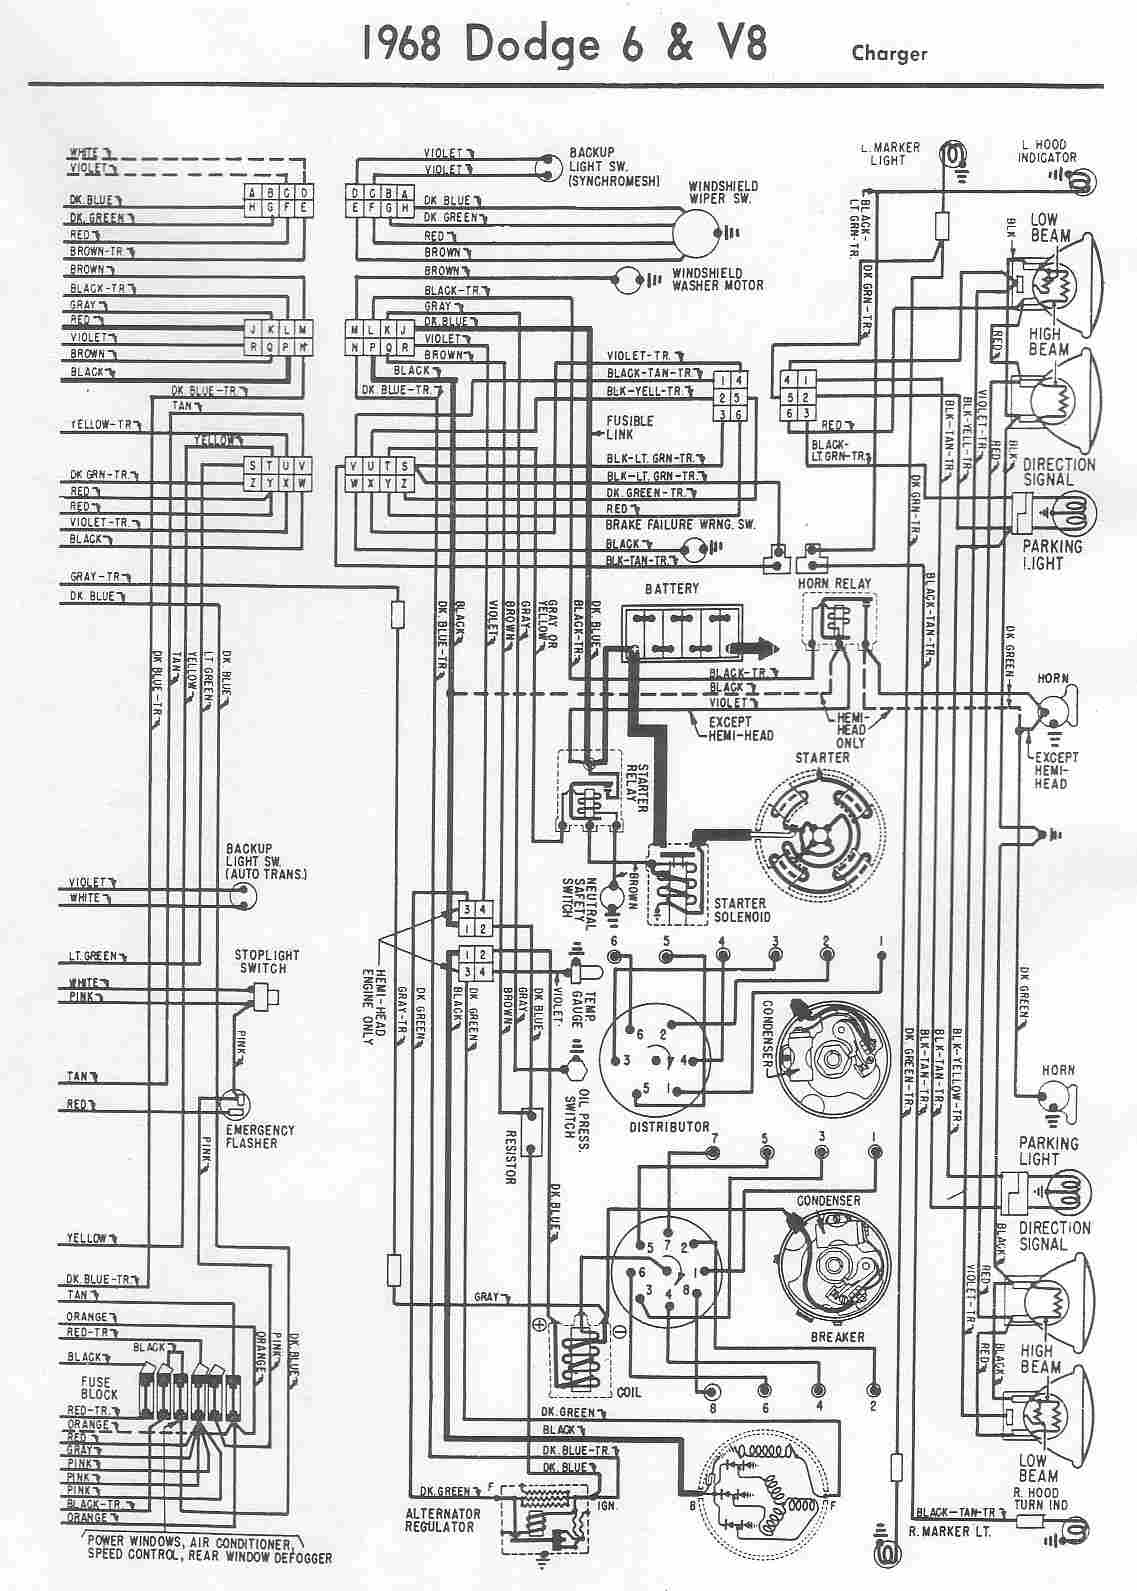 1968 Chevelle Dash Wiring Diagram Free Download Dodge Car Manuals Wiring Diagrams Pdf Amp Fault Codes